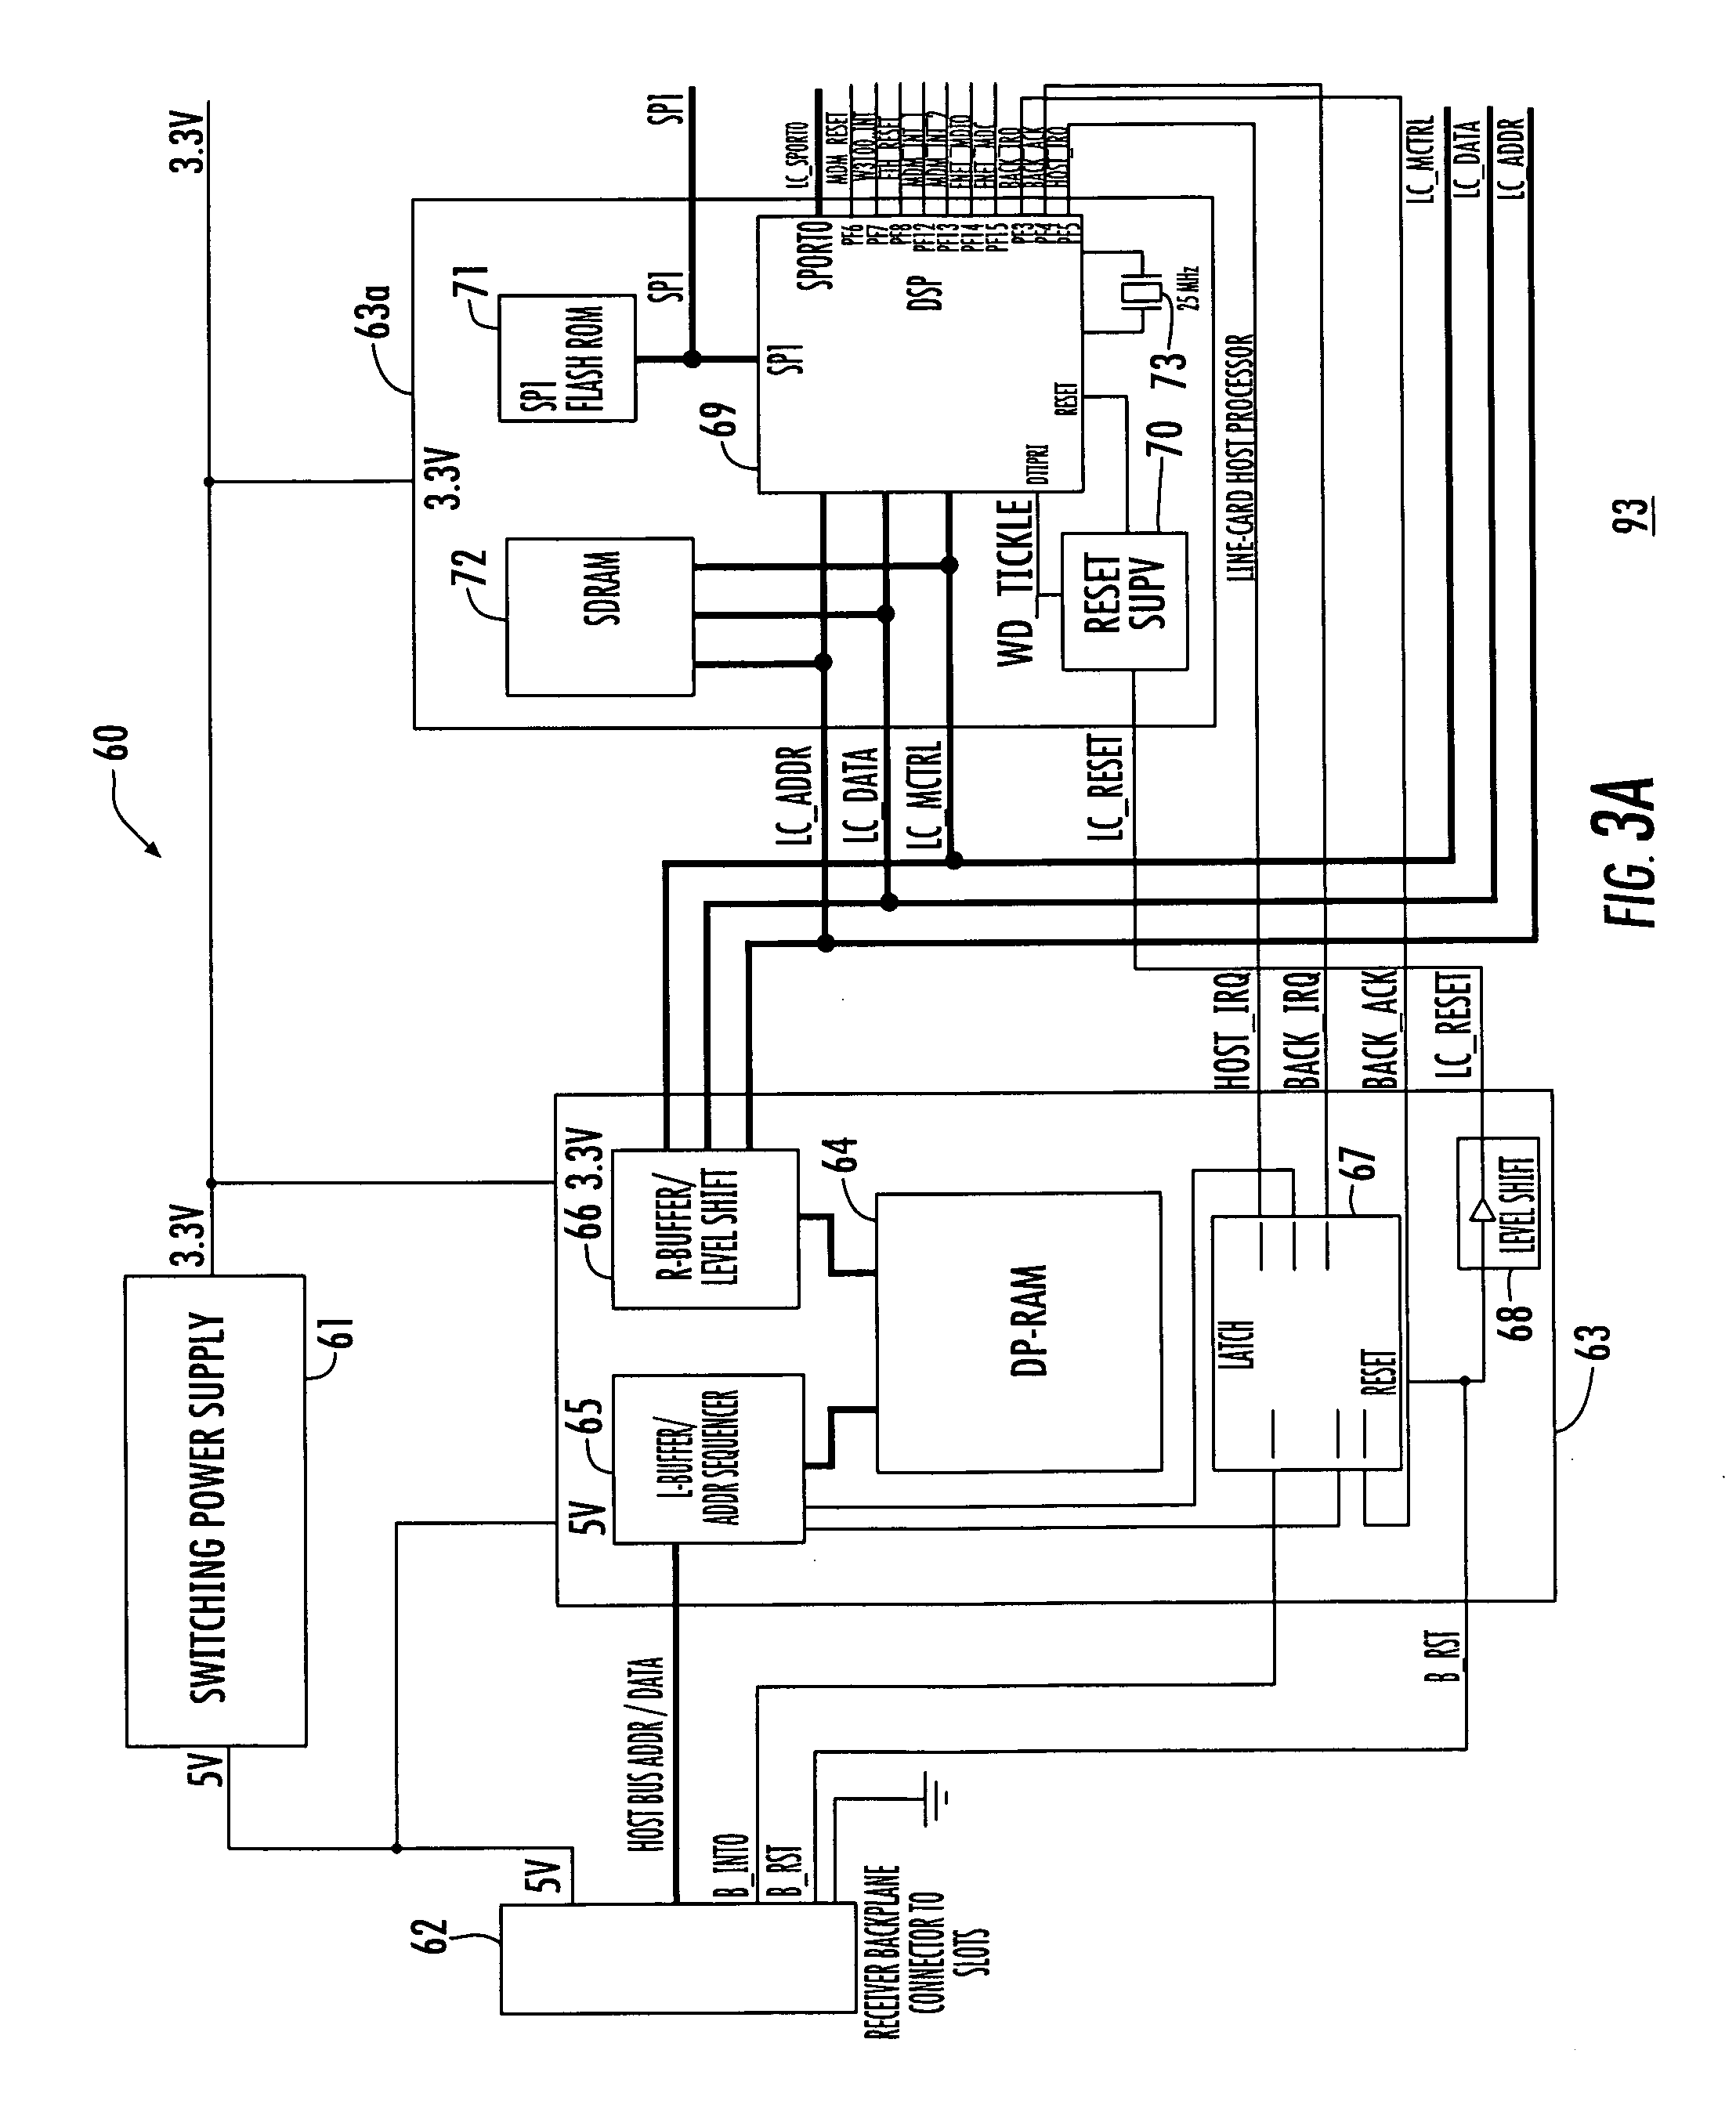 Electric Heat Sequencer Wiring Diagram 38 Images Relay Marvair Us20090058630a1 20090305 D00004resize6652c814